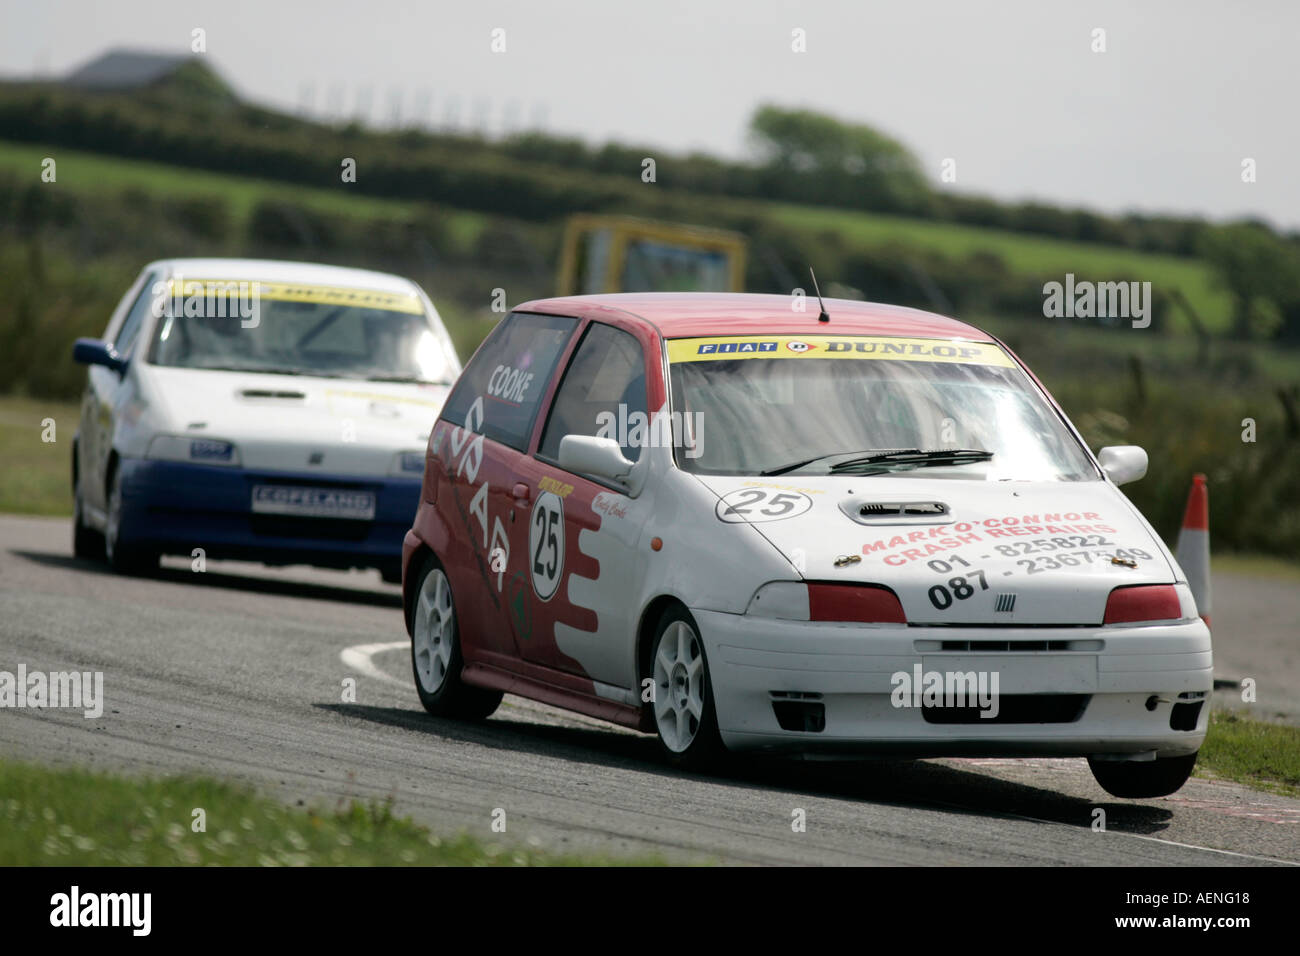 Fiat Uno Stock Photos Images Alamy Manual Free Download Punto Racing At Kirkistown Circuit County Down Northern Ireland Image